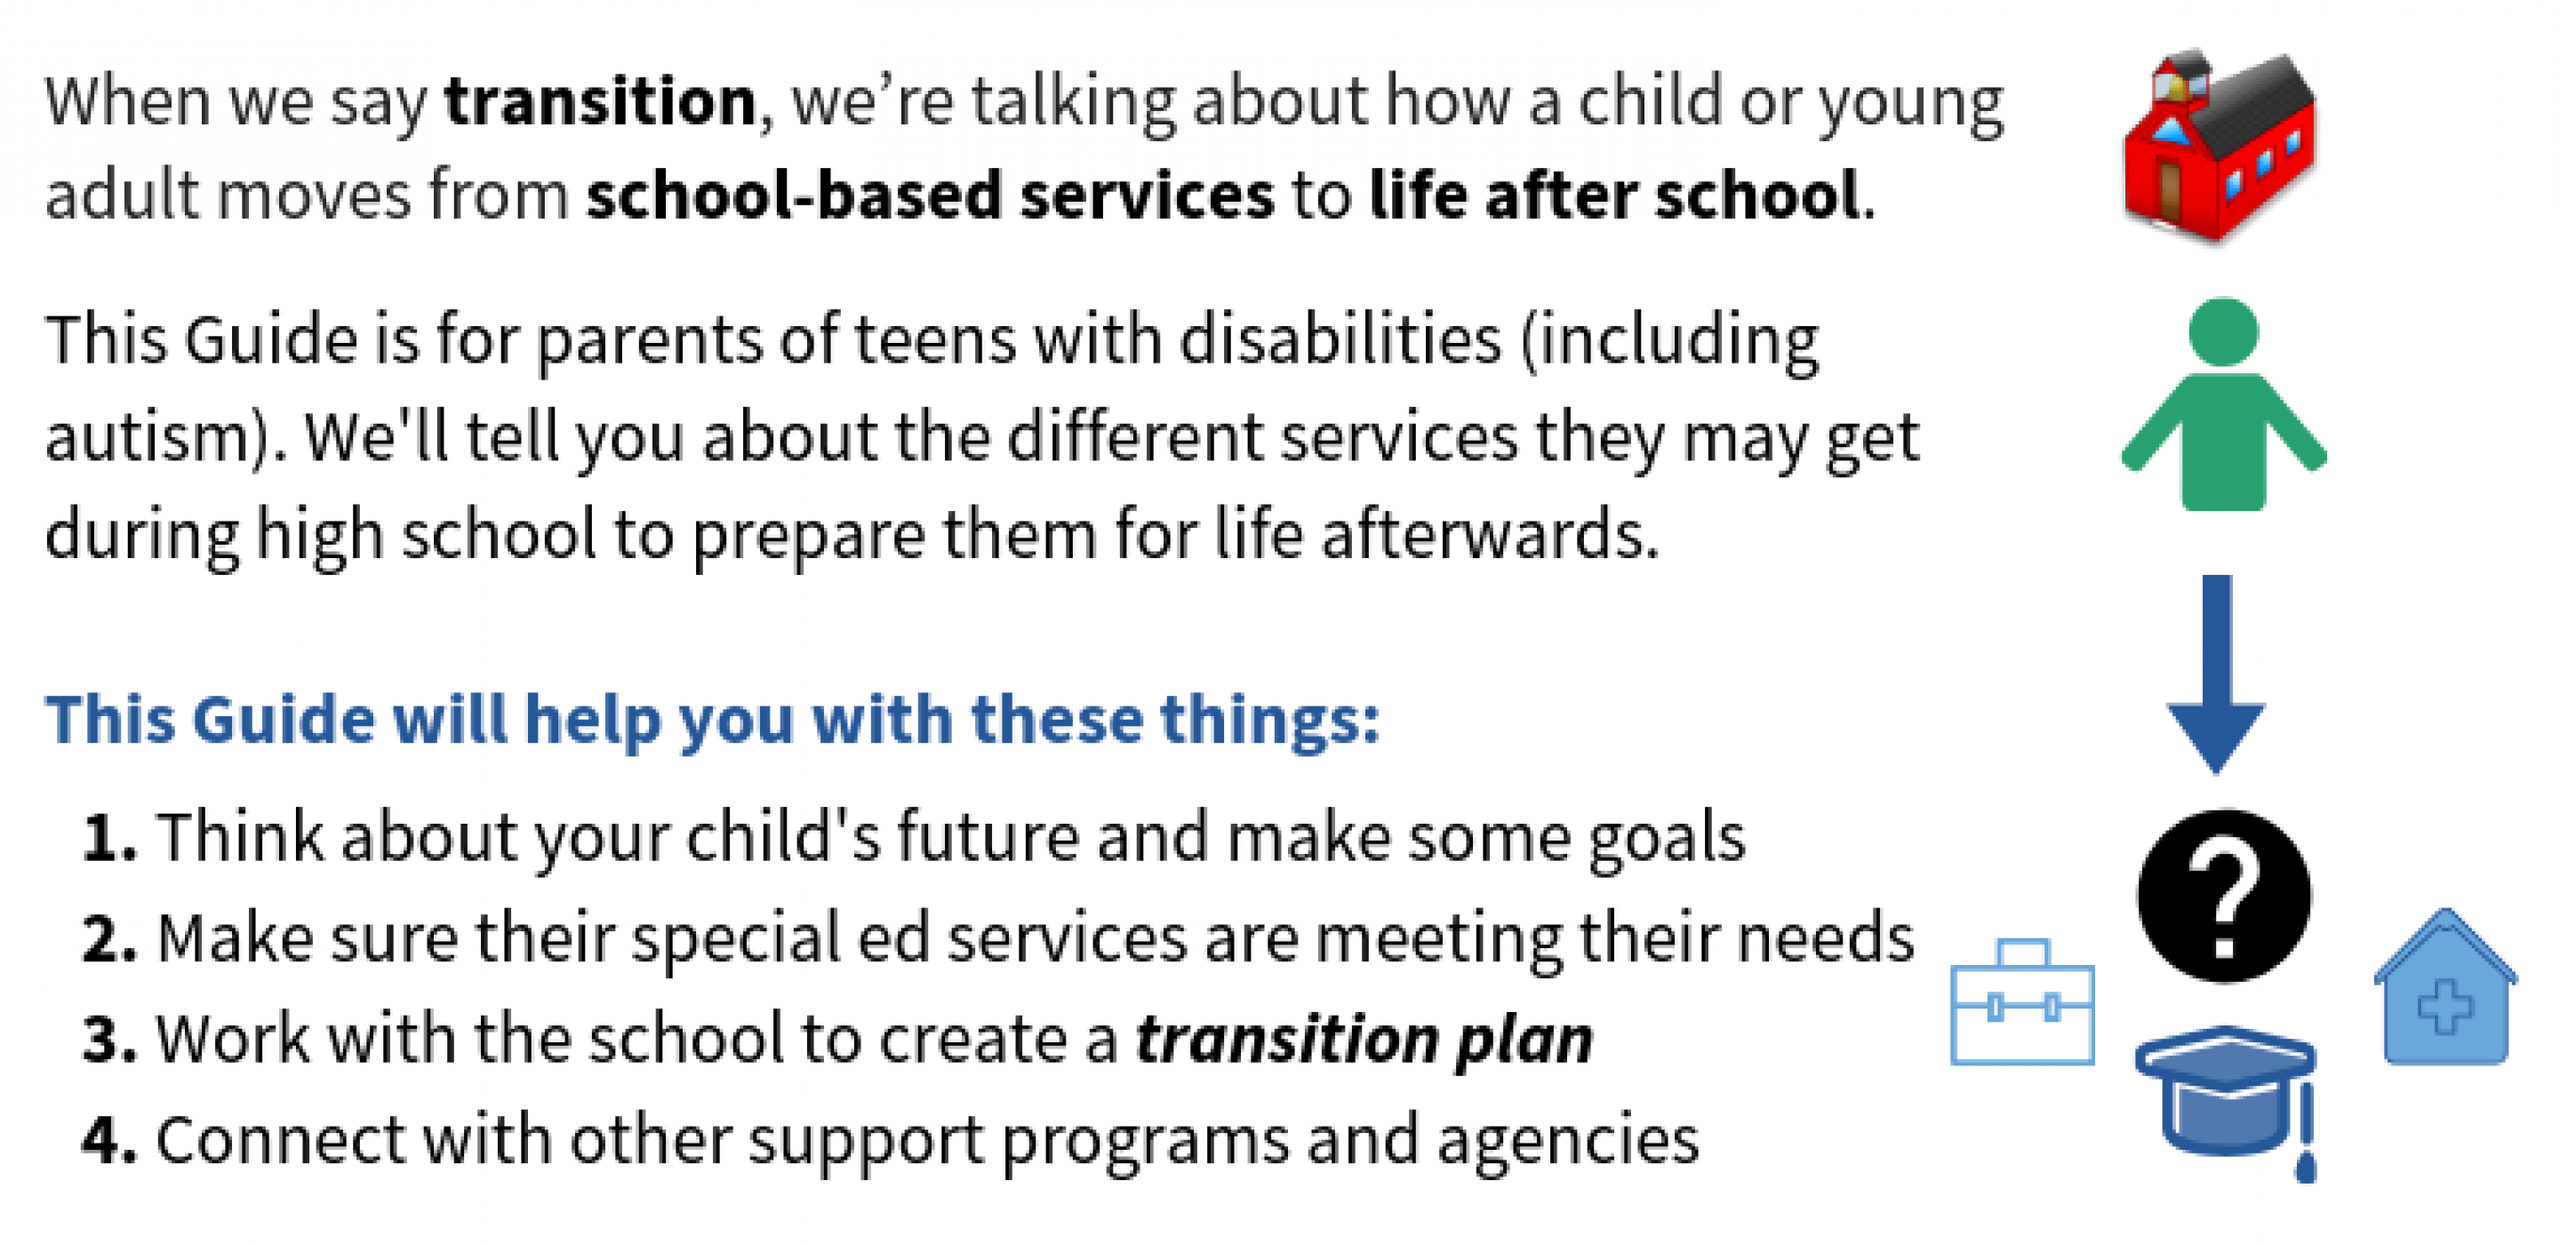 When we say transition, we're talking about how a child or young adult moves from school-based services to life after school. This Guide is for parents of teens with disabilities (including autism). We'll tell you about the different servcies they may get during high school to prepare them for life afterwards.  This Guide will help you with these things: 1. Think about your child's future and makes some goals. 2. Make sure their special ed servcies are meeting their needs. 3. Work wth the school to create a transition plan. 4. Connect with other support programs and agencies.